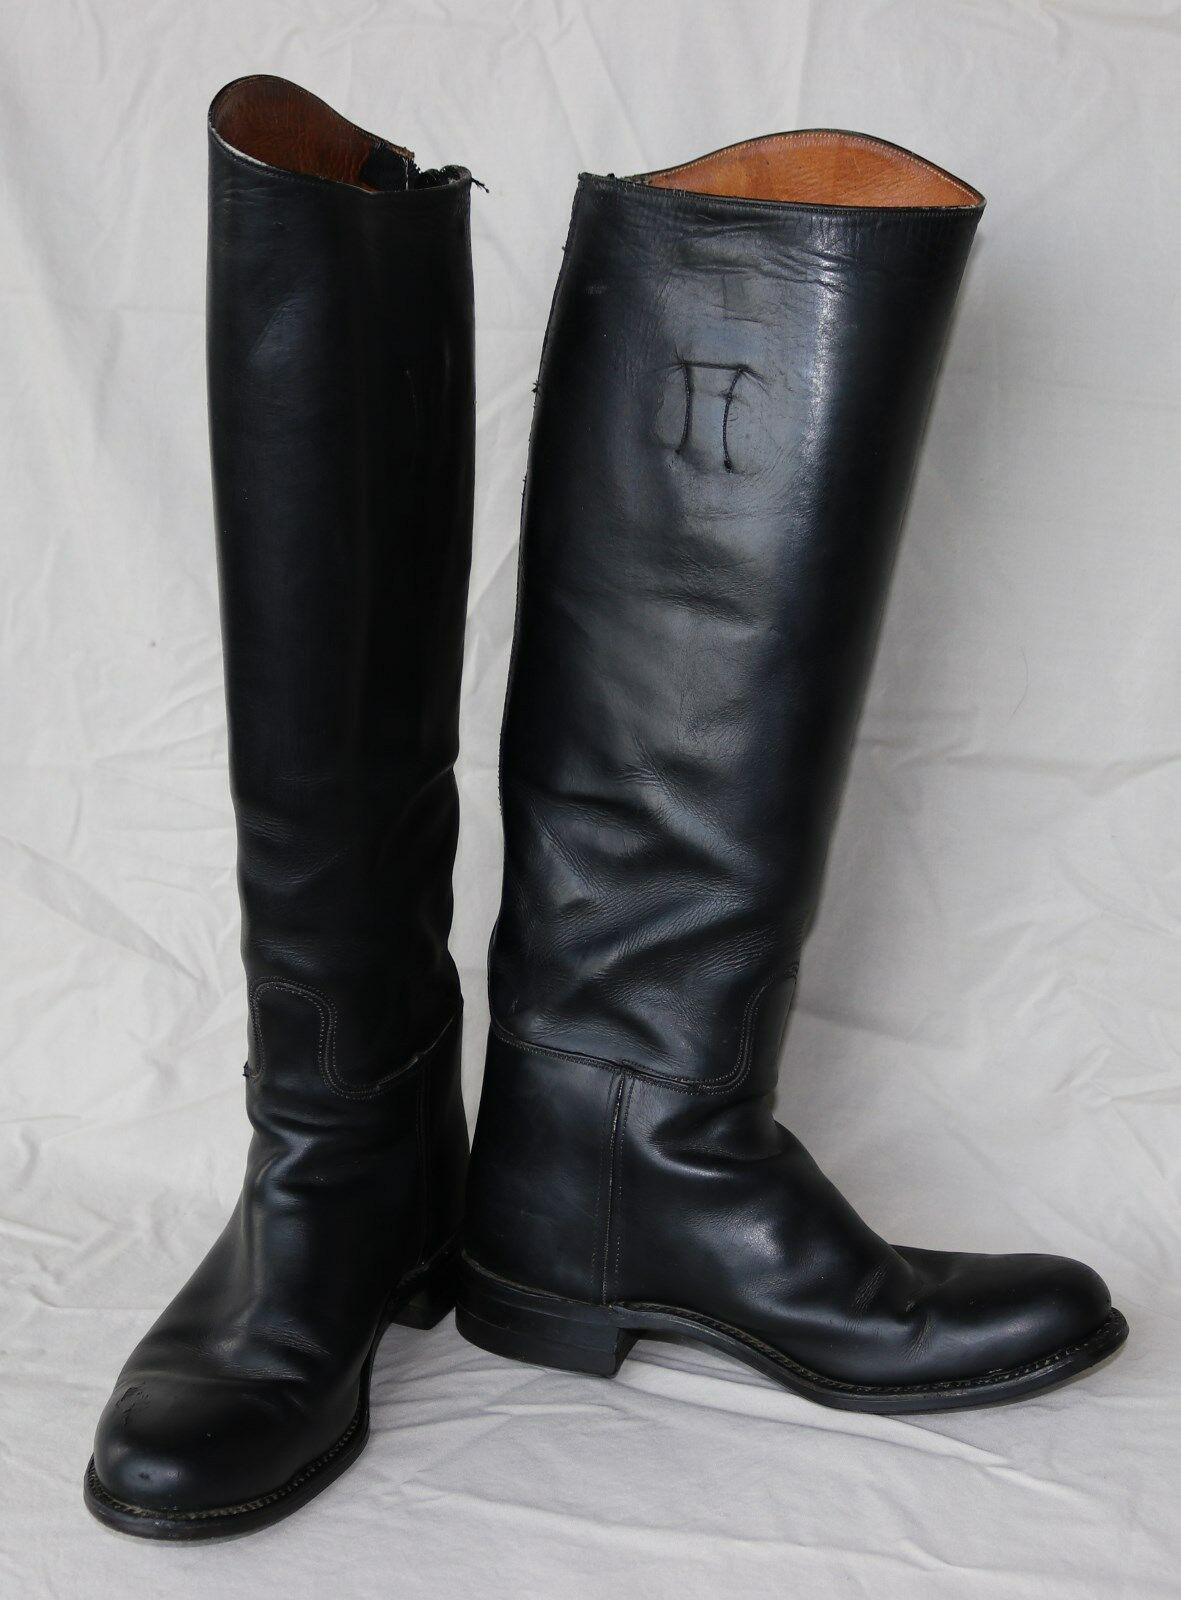 Black Dehner leather riding boots, zippered 7C back, shorter shaft height, size 7C zippered bb12c6